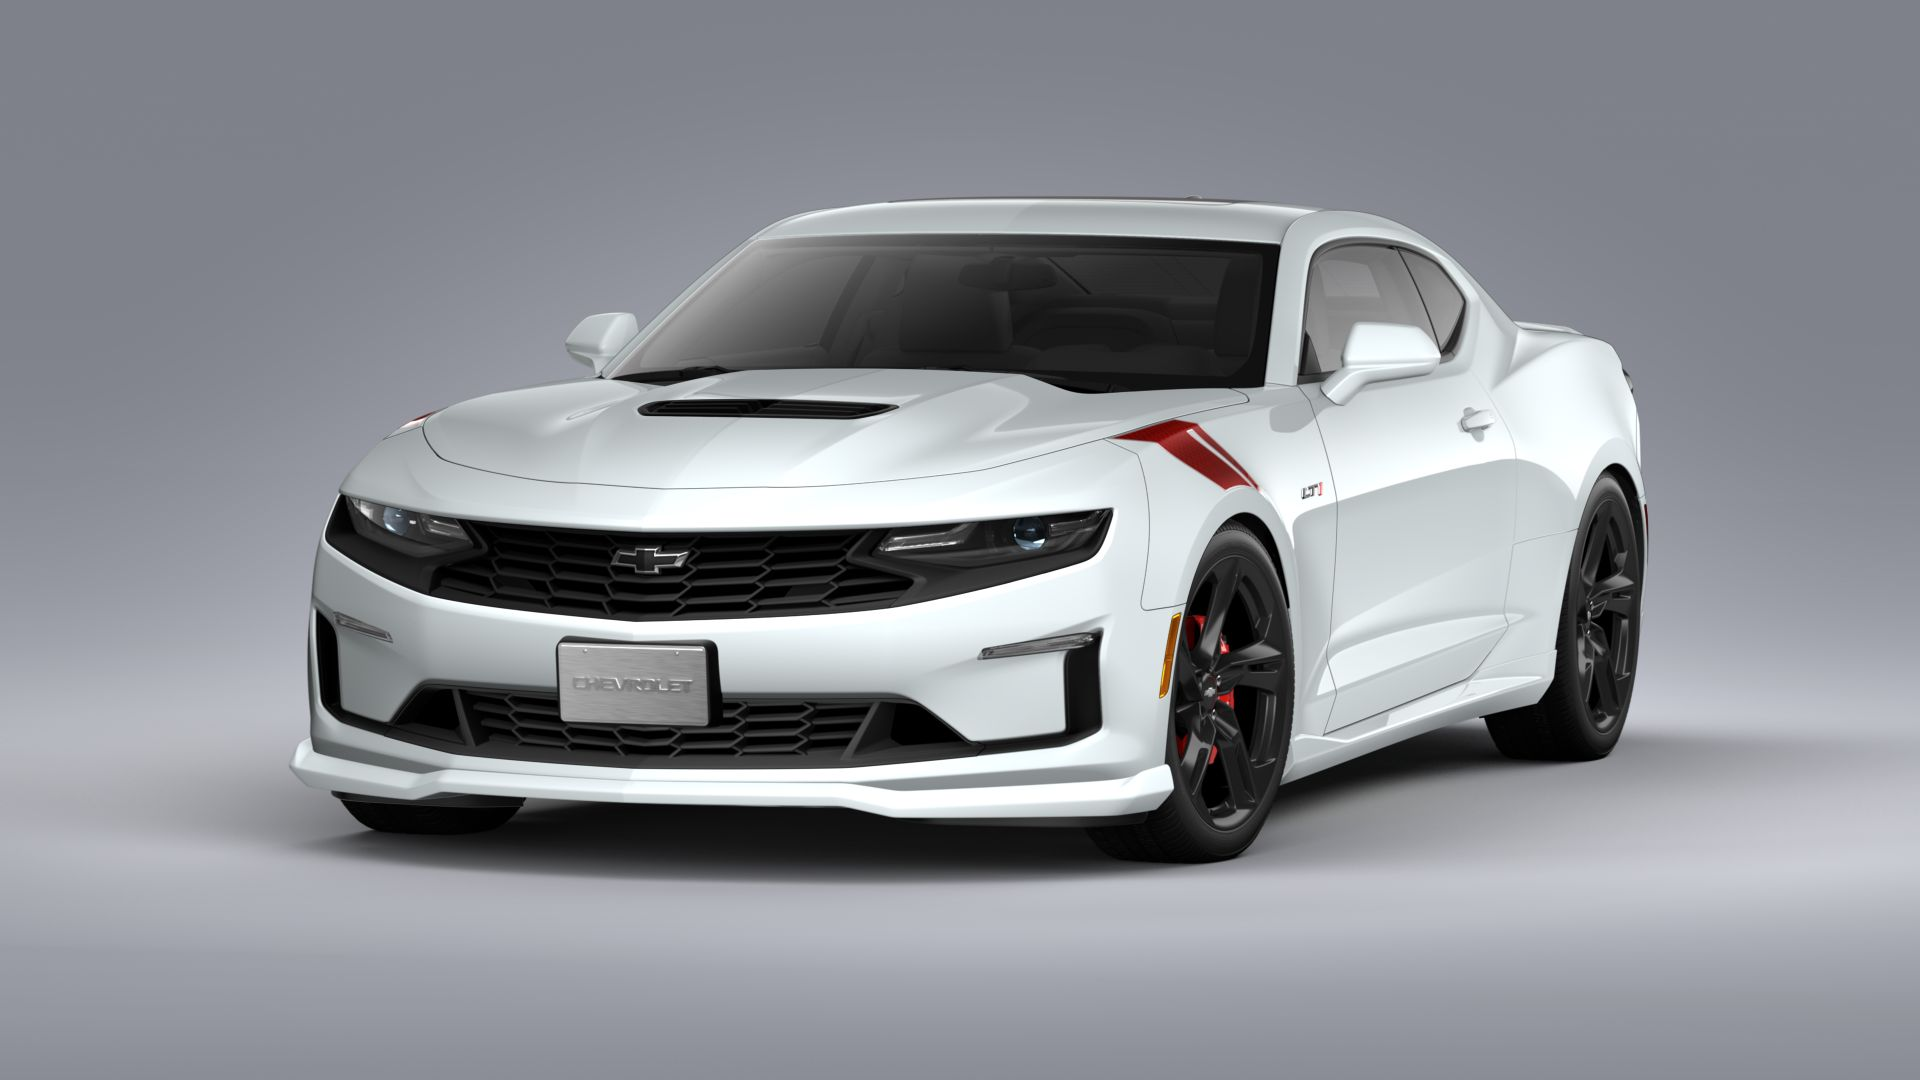 2021 Chevrolet Camaro LT1 REAR WHEEL DRIVE Coupe